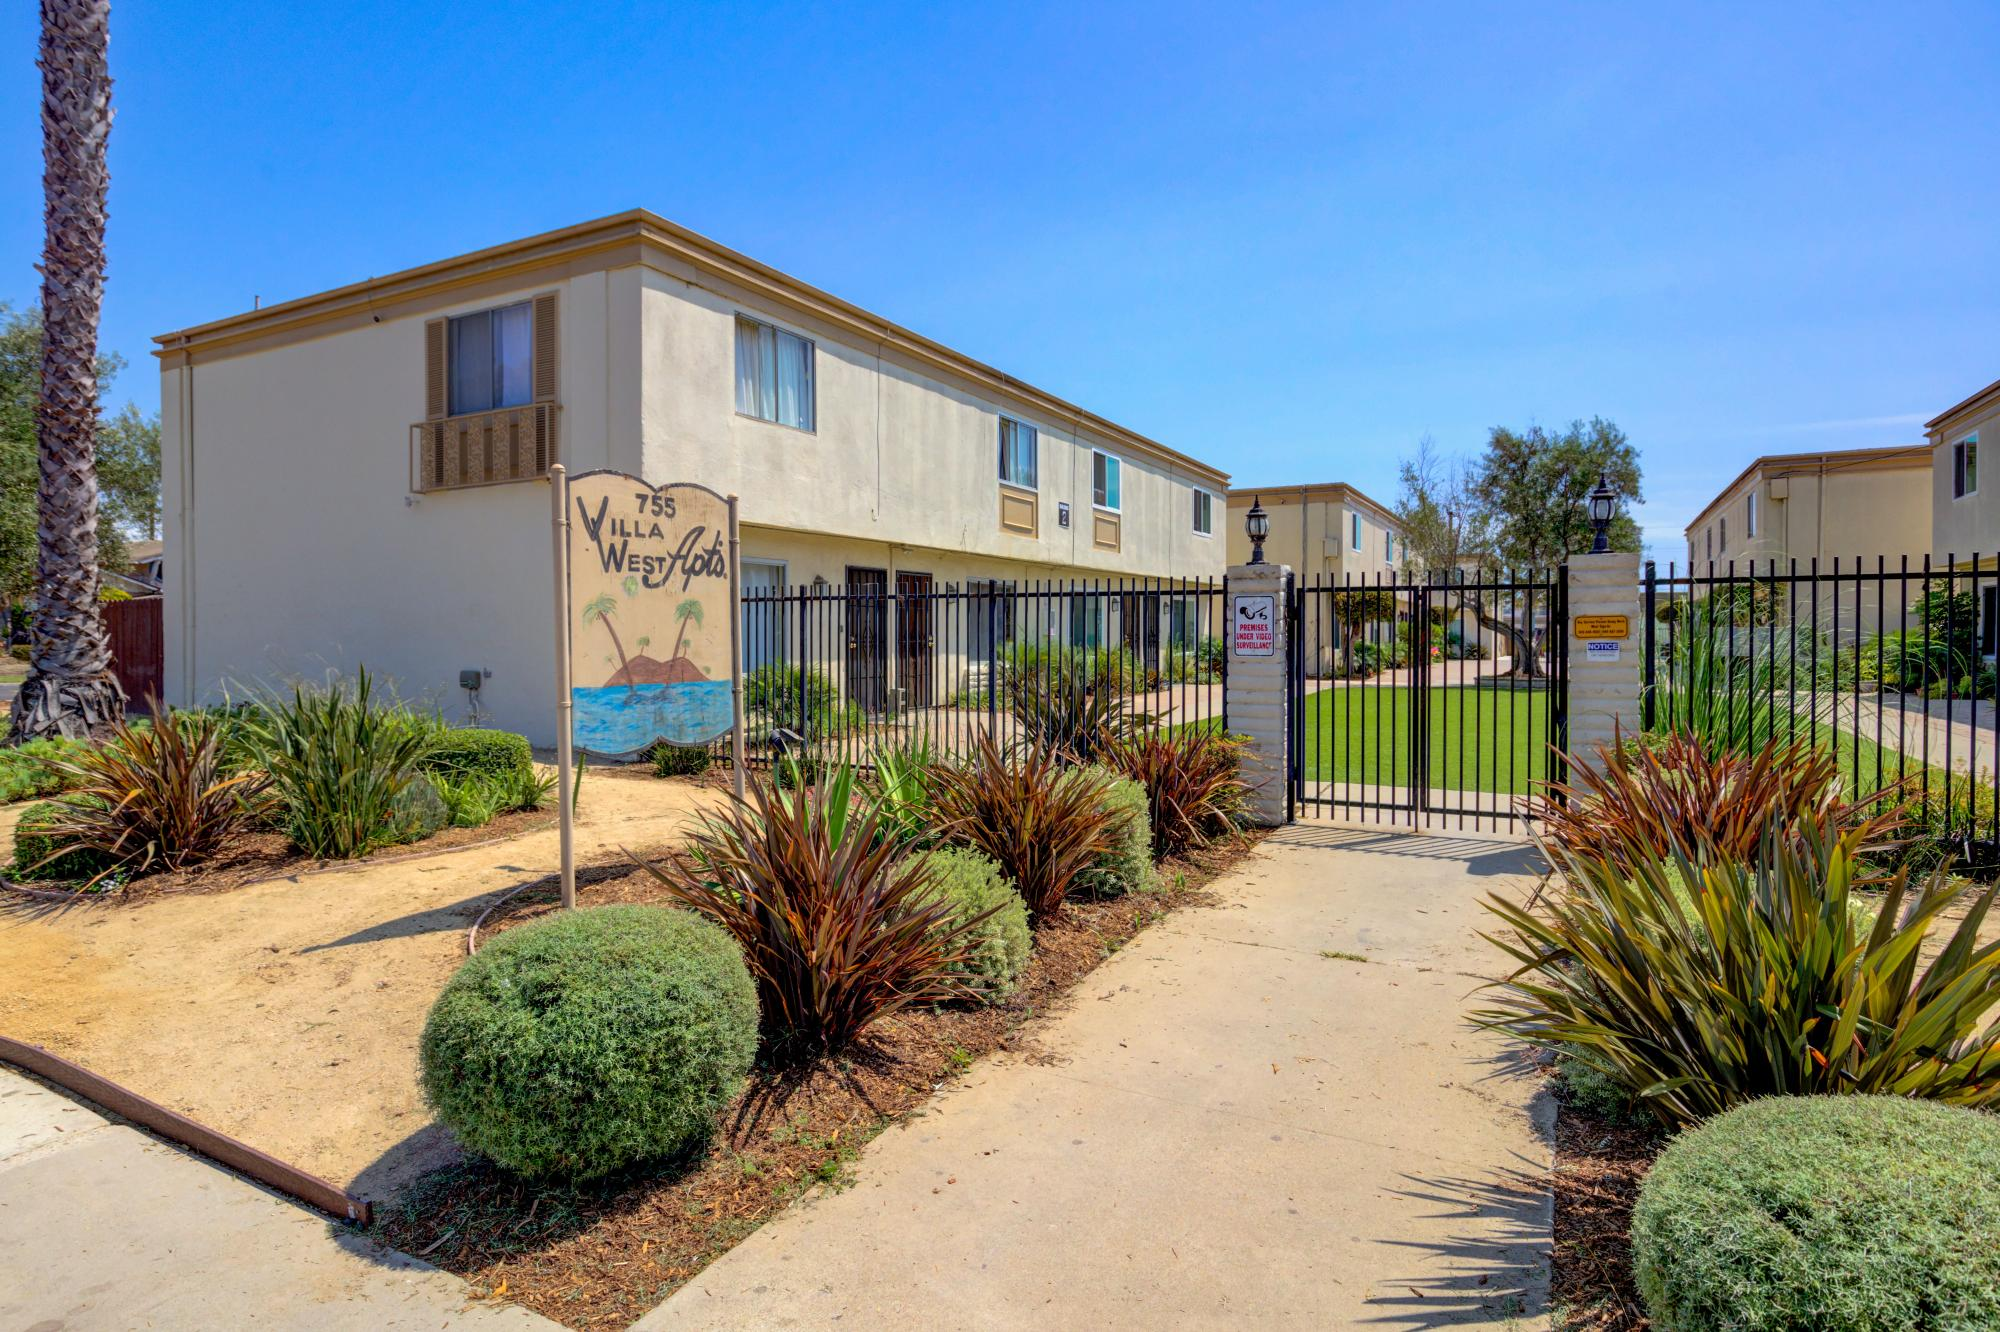 Picture of Apartment Building For Sale in Costa Mesa, California, United States